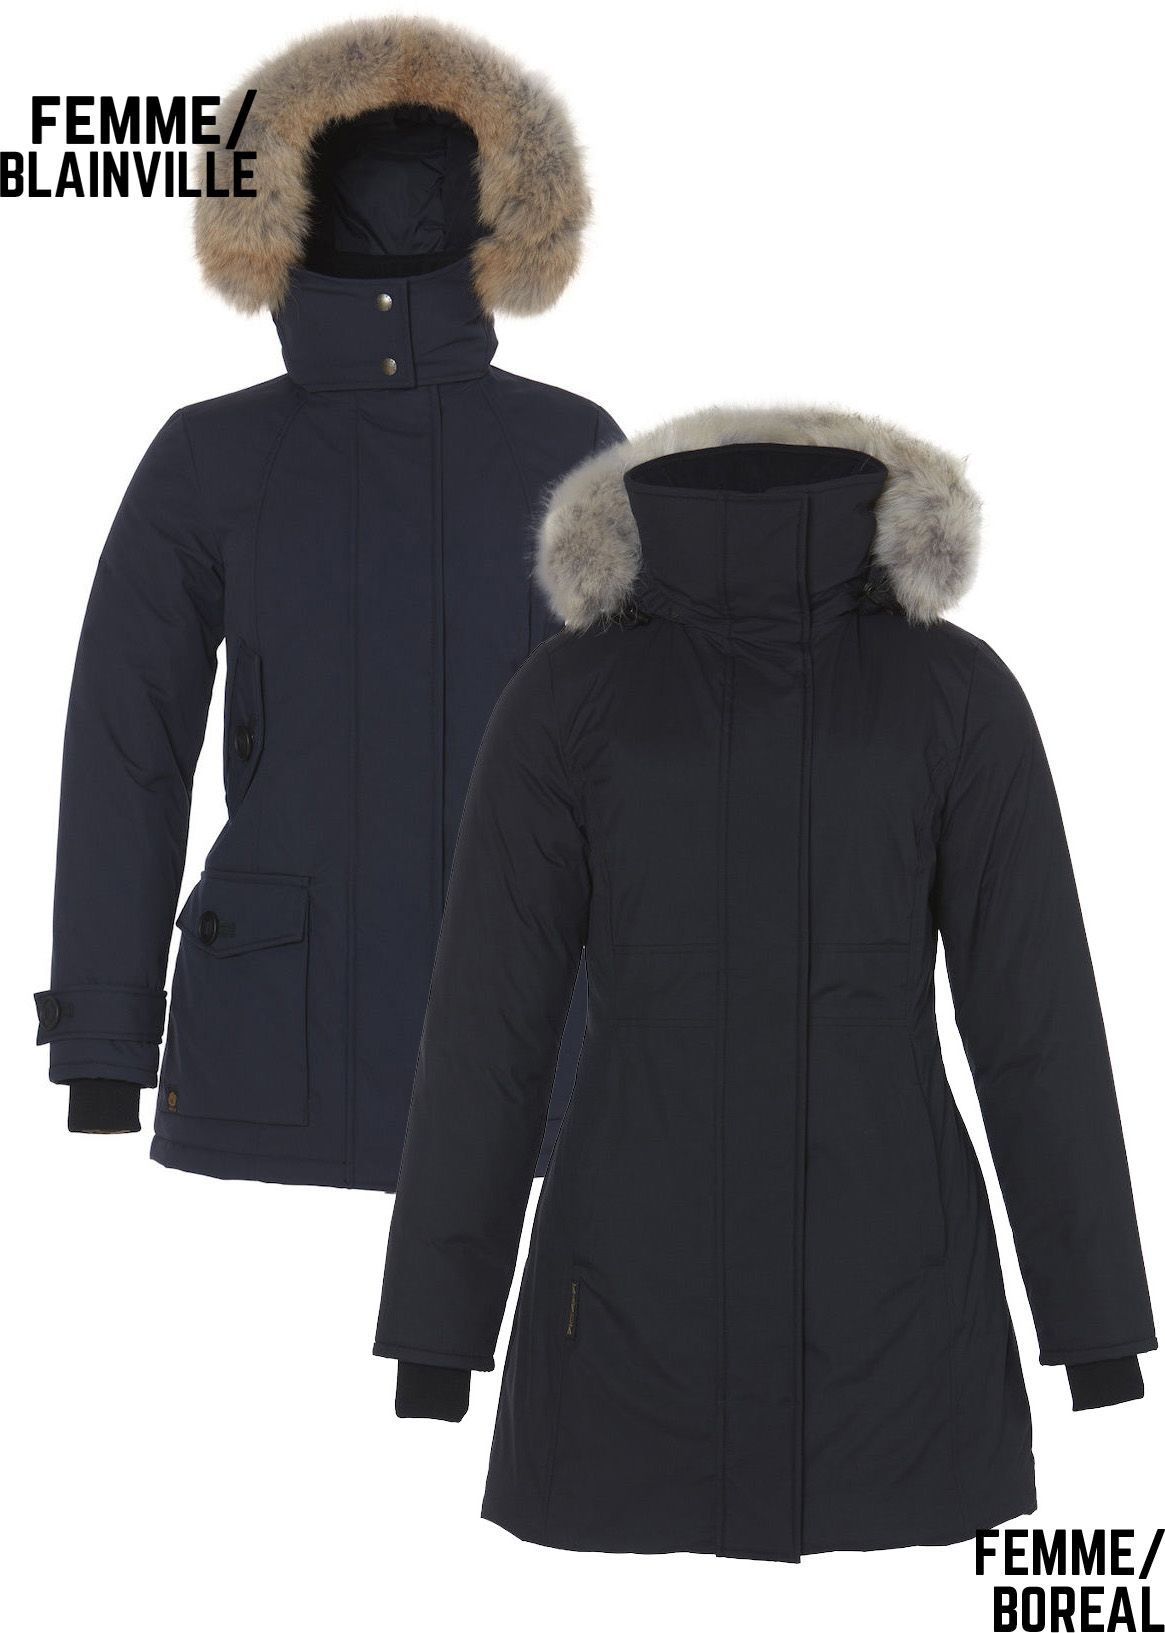 Our 5 warmest coats to conquer the cold SAIL (With